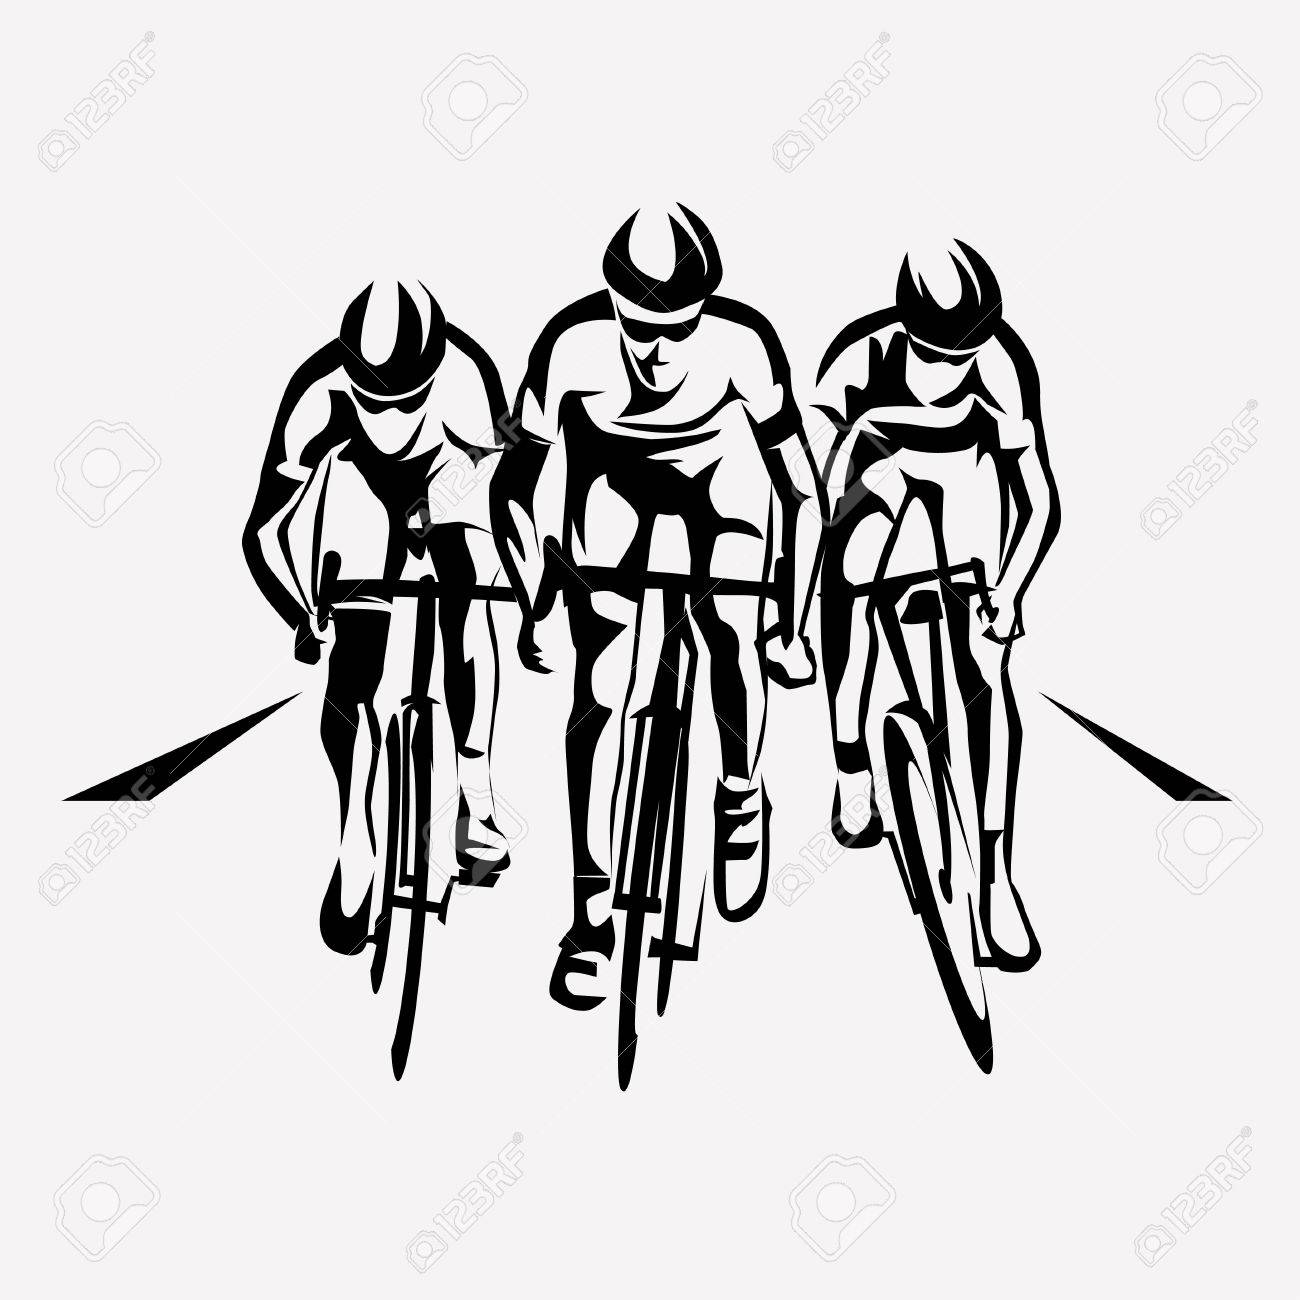 cycling race stylized symbol, outlined cyclist vector silhouettes - 70454007